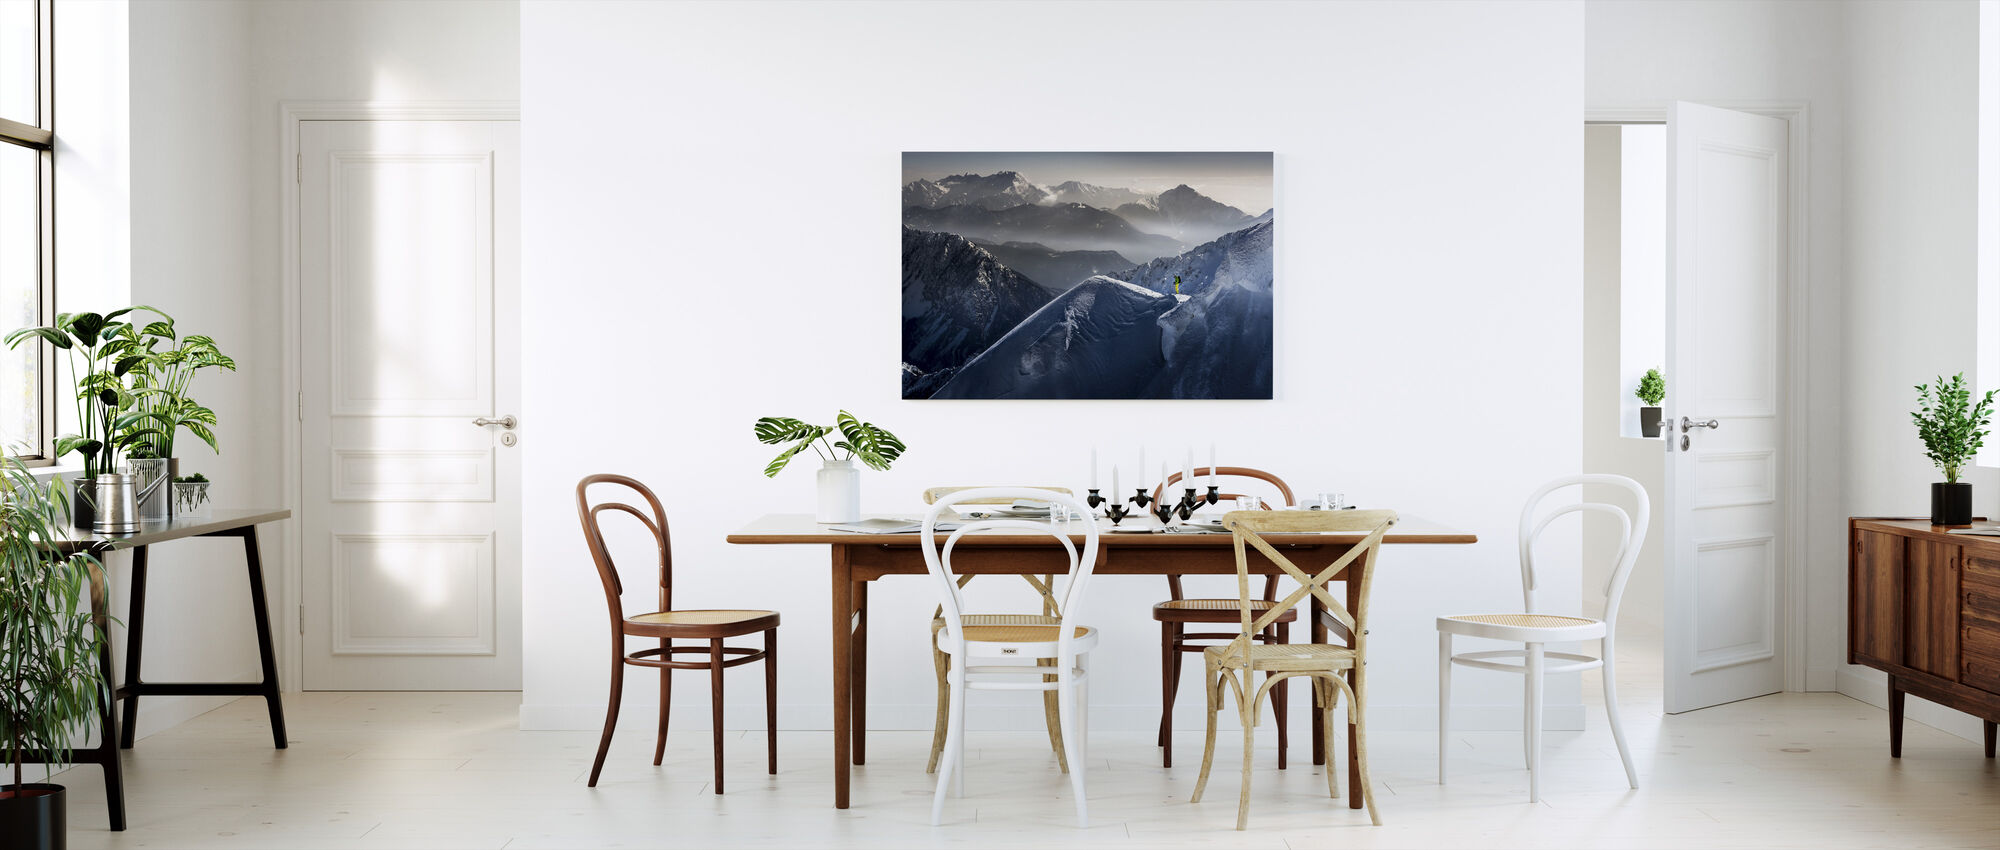 Skier on Mountain Top - Canvas print - Kitchen